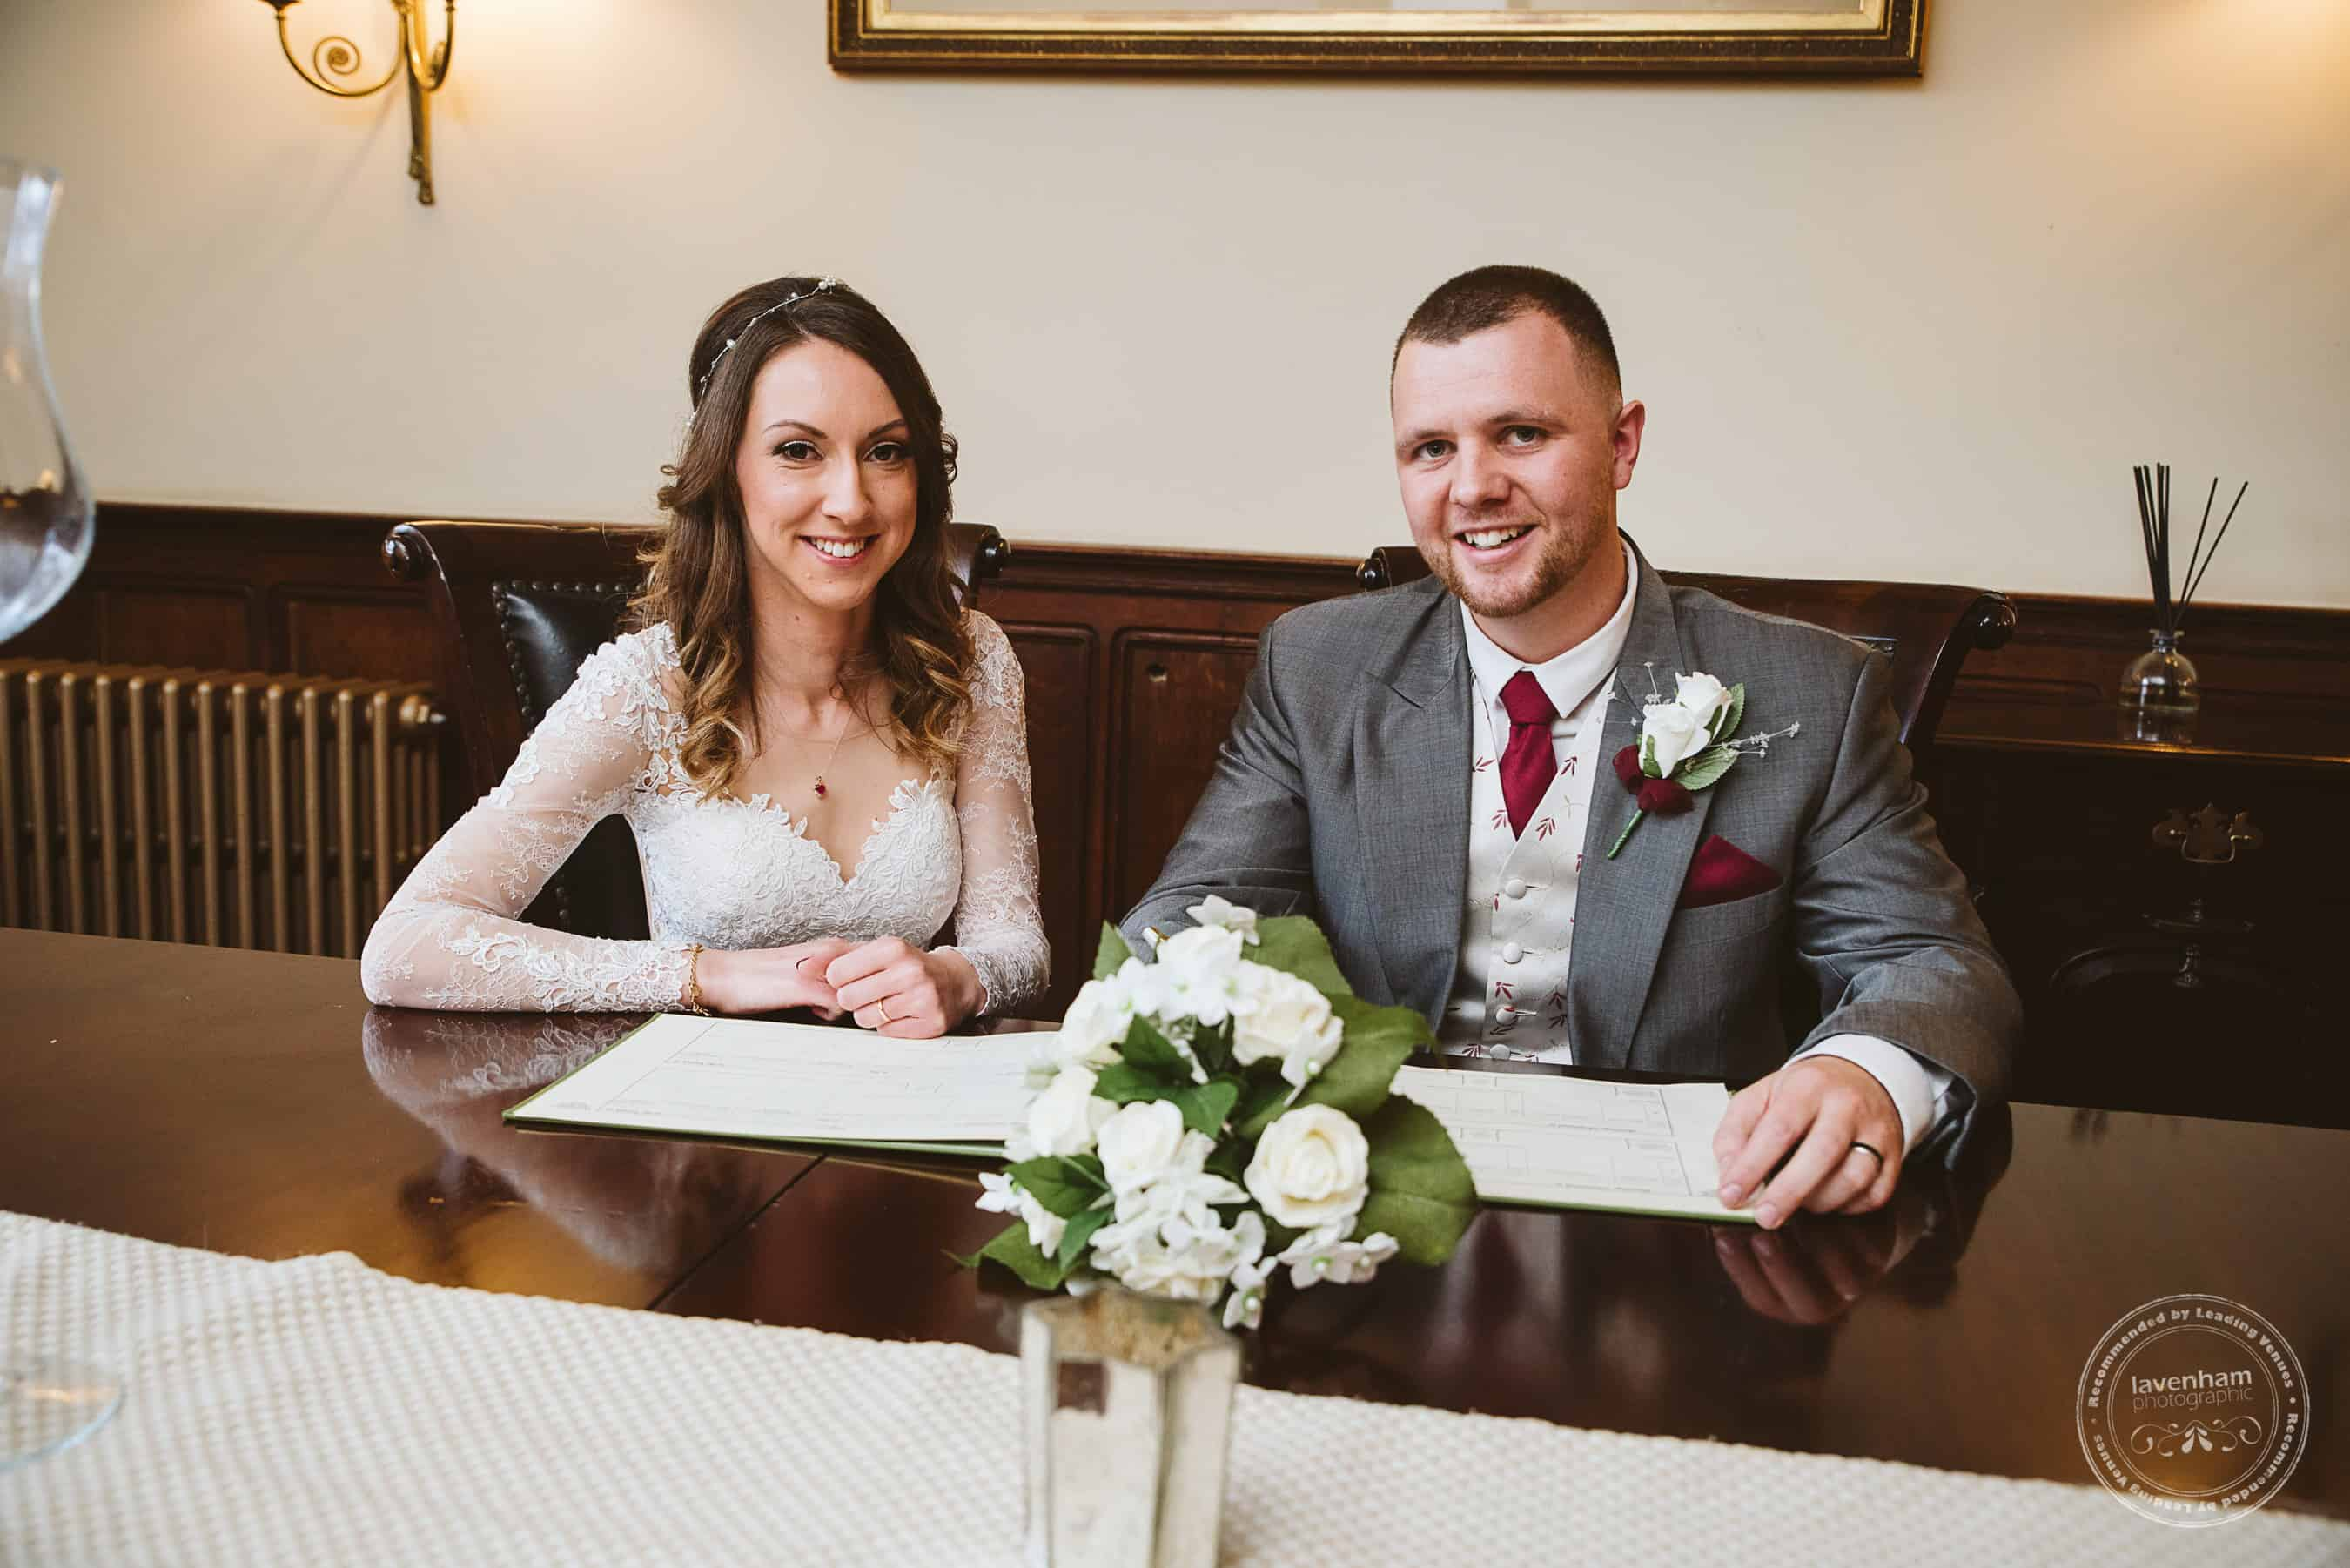 041118 Woodhall Manor Wedding Photography by Lavenham Photographic 042